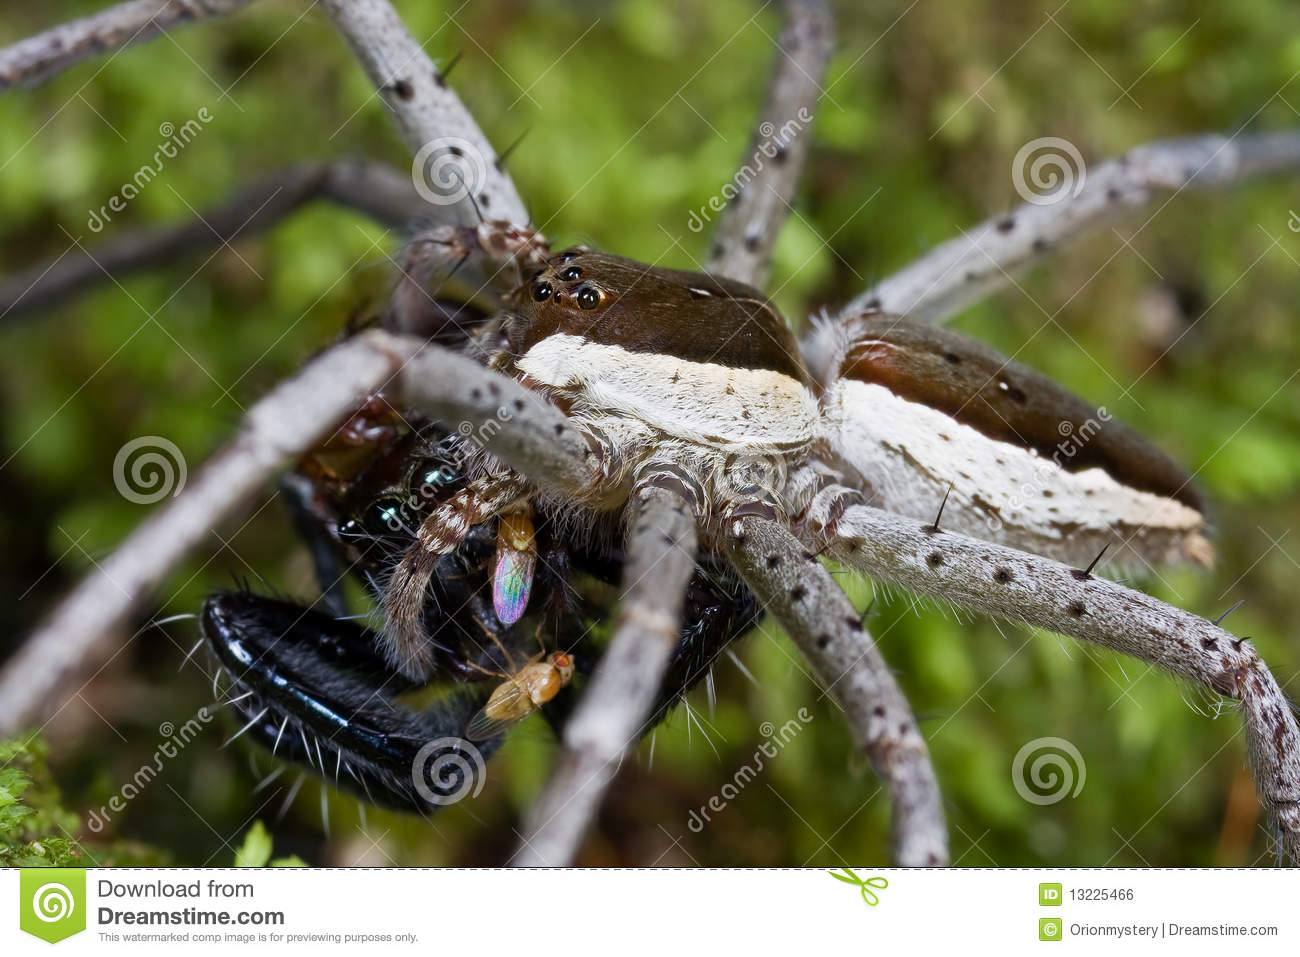 Spider in web with prey - photo#21